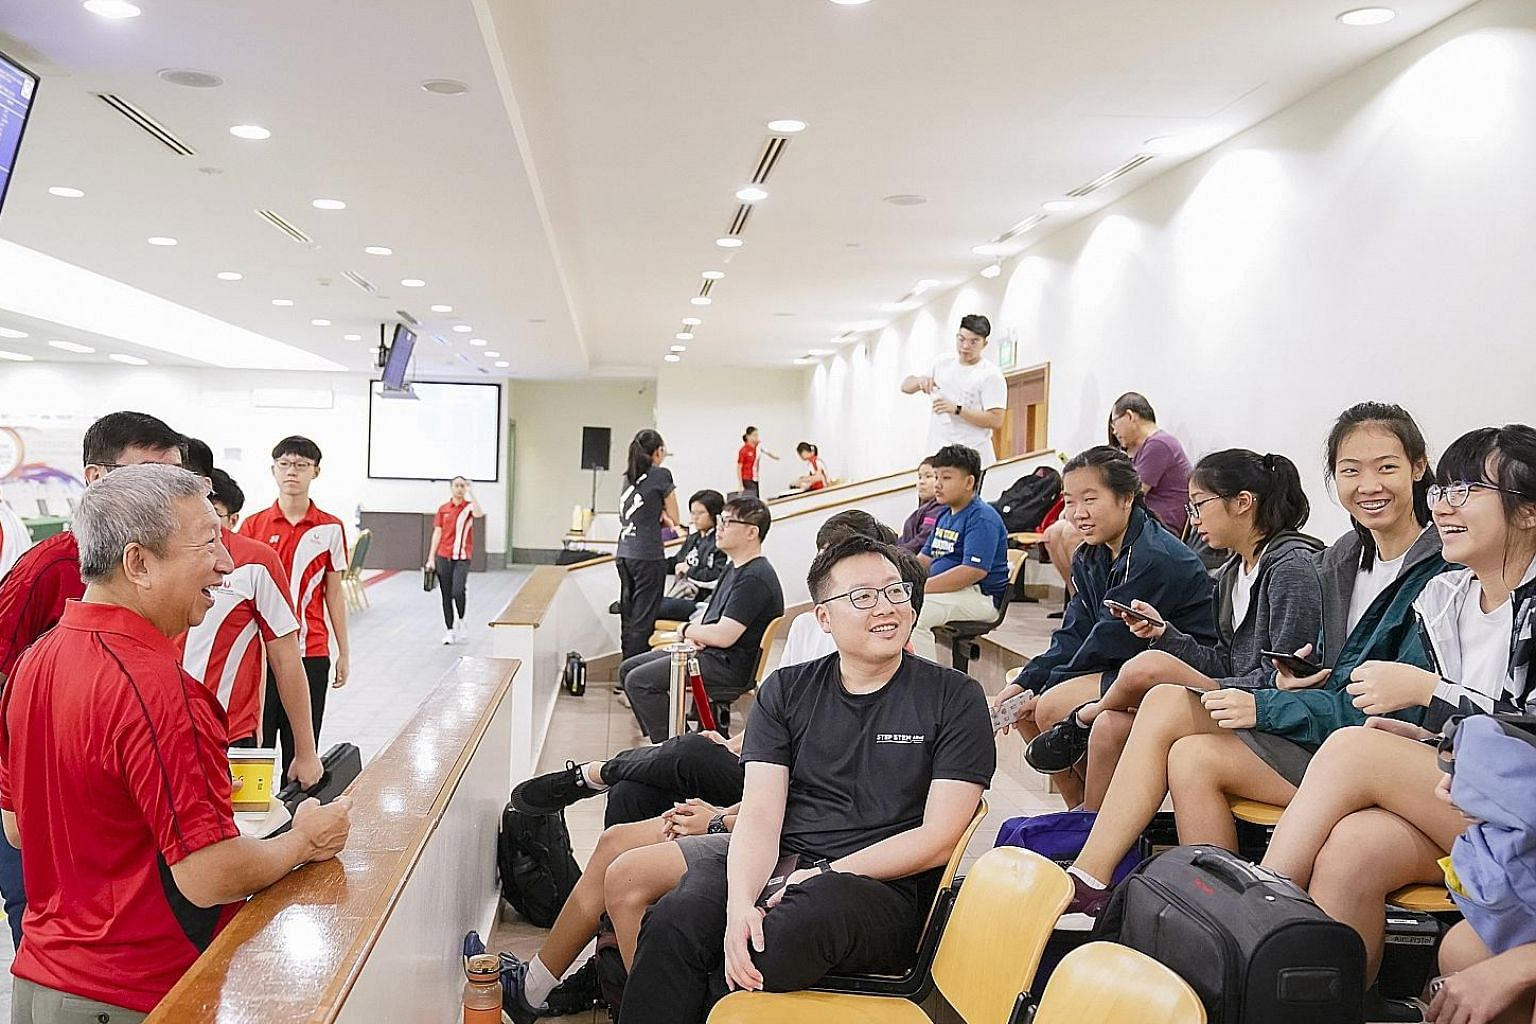 Ng Ser Miang (left), chairman of the Singapore Olympic Foundation, chatting with some shooters at the opening ceremony of the Singapore Youth Olympic Festival at the Safra Indoor Air Weapon Range in Safra Yishun yesterday morning. Ng was the guest of